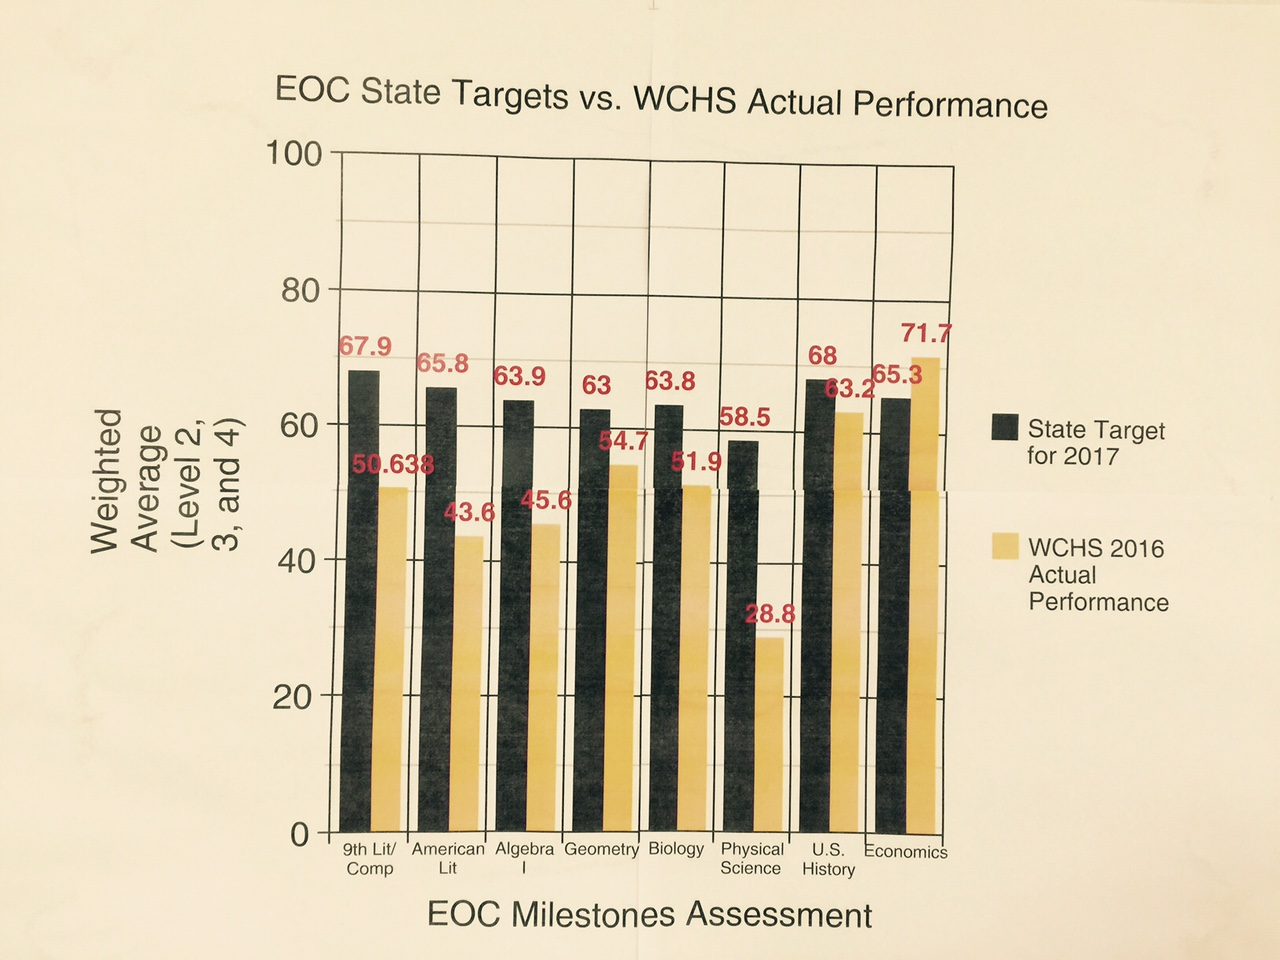 EOC State Targets vs. Actual Performance